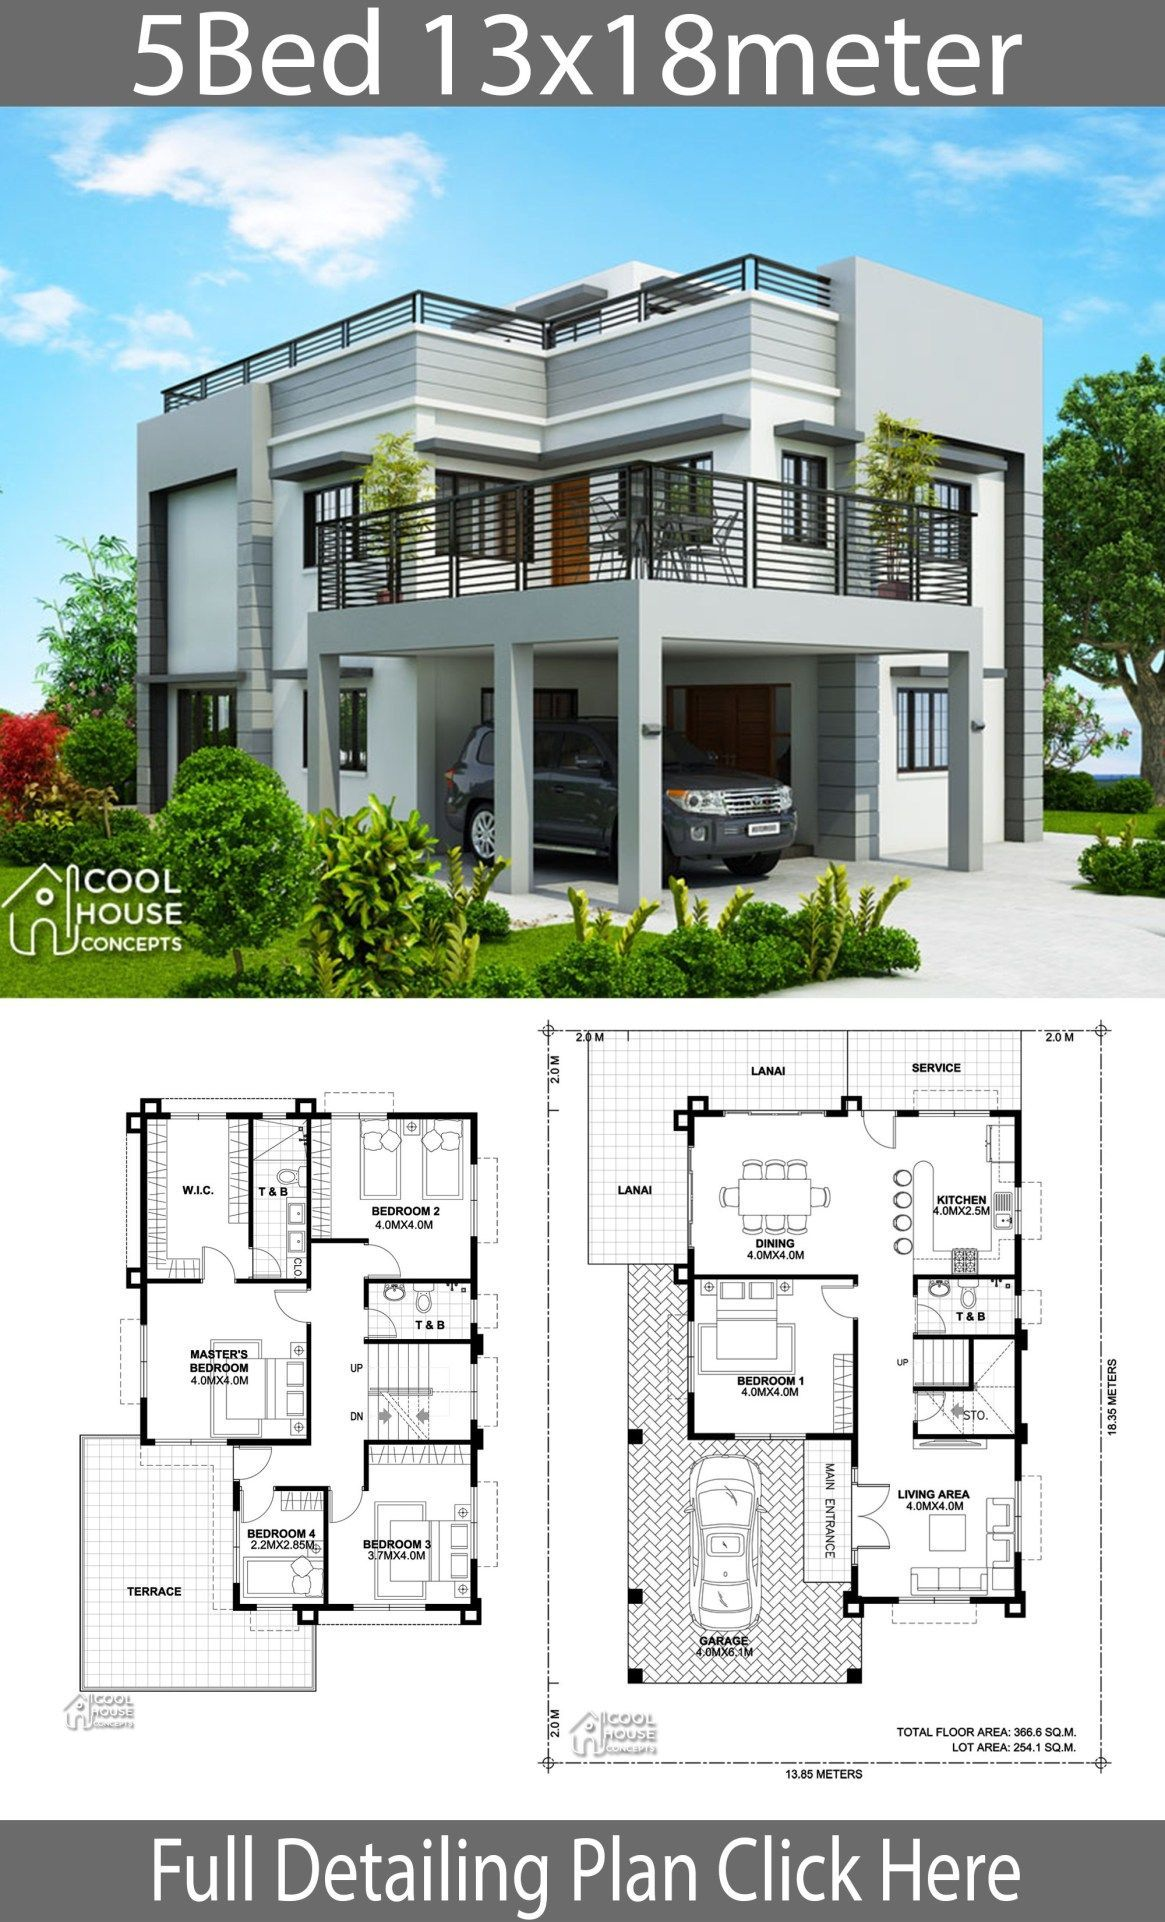 Home Design Plan 13x18m With 5 Bedrooms Home Ideas In 2020 Architectural House Plans Model House Plan Modern House Plans